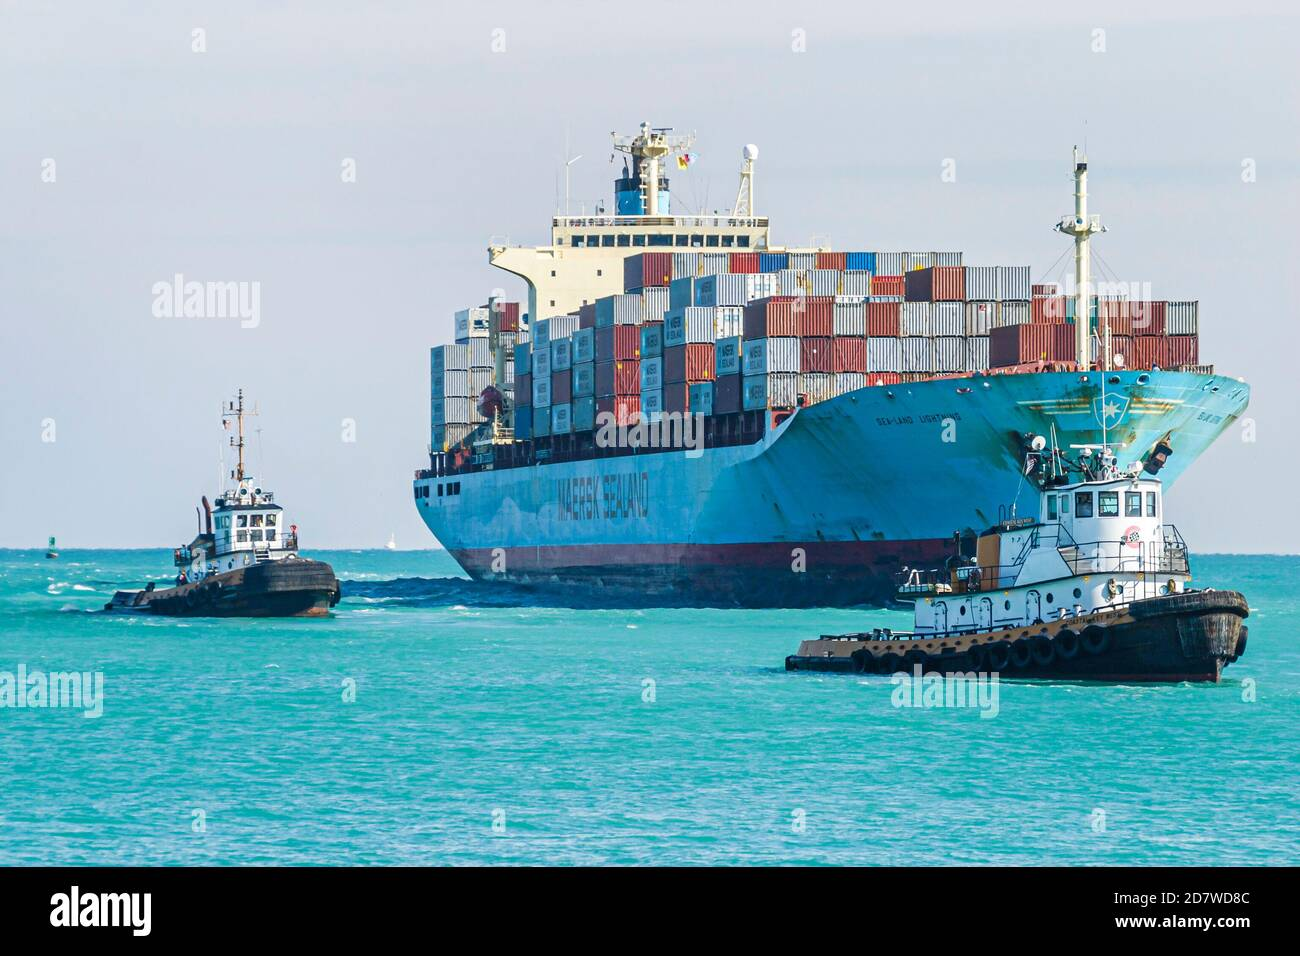 Florida Miami Beach Atlantic Ocean cargo container ship loaded, approaches approaching arrives arriving Port of Miami tugboats, Stock Photo